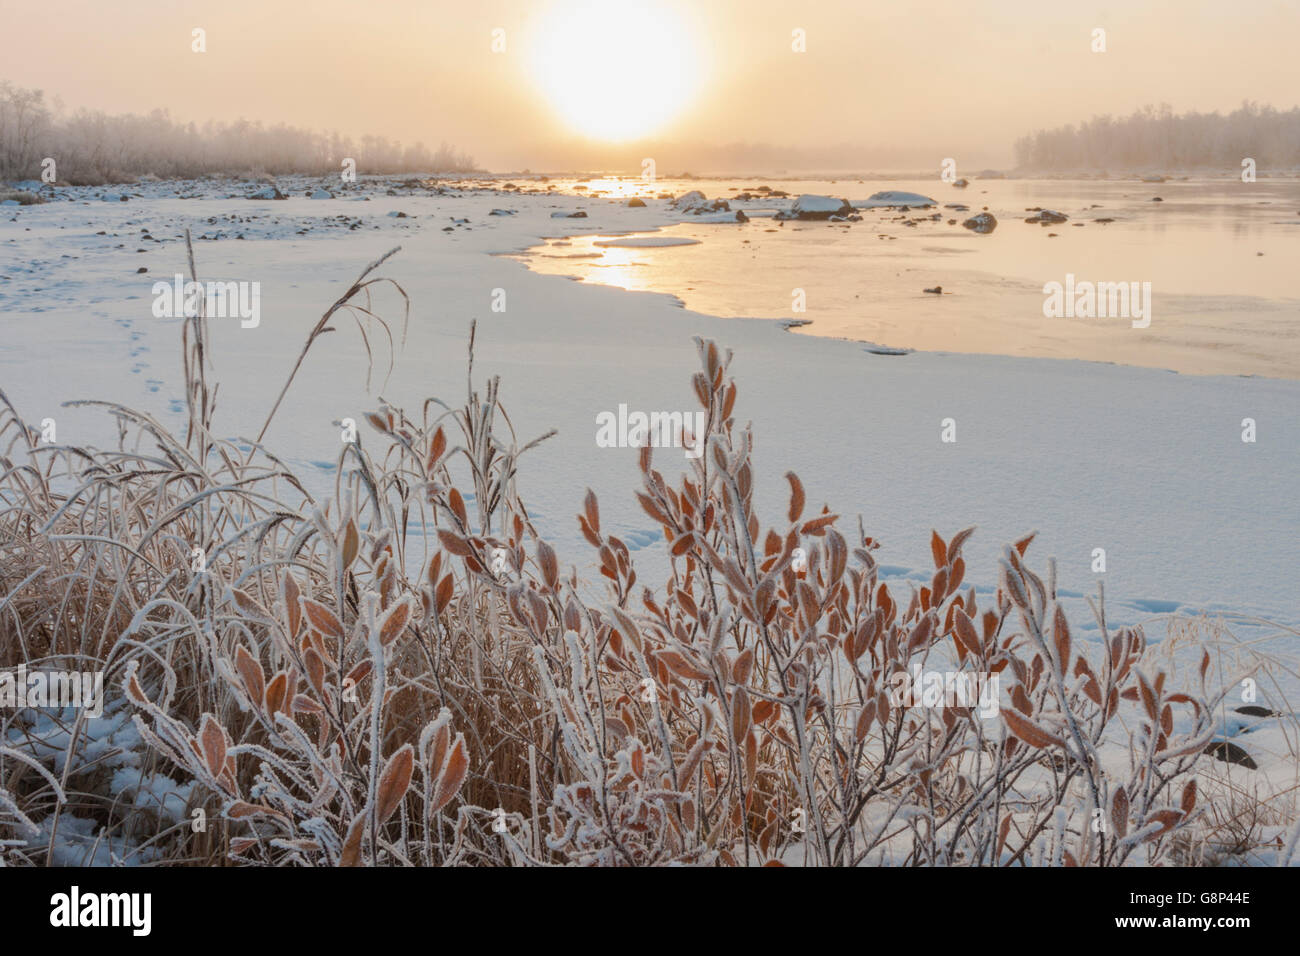 Morning sun over a river with ice and snow, fog is over the water, bushes having orange colored leaves, Kiruna, - Stock Image